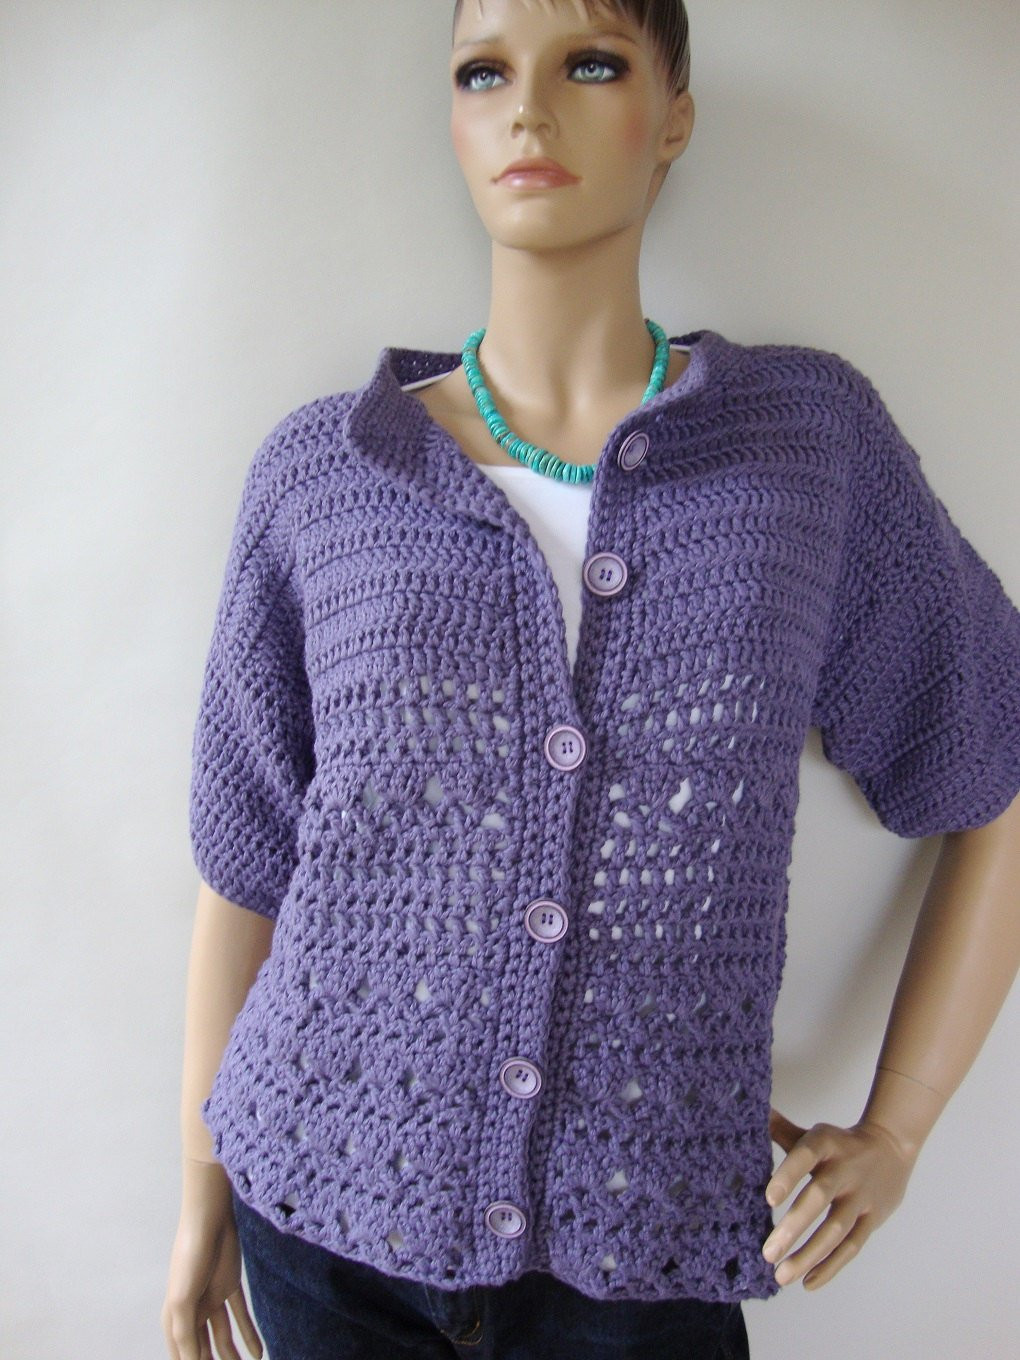 Crochet Cardigan Sweater Beautiful Crochet Sweater Summer Cardigan Blue Cardigan Cotton Of Luxury 41 Ideas Crochet Cardigan Sweater